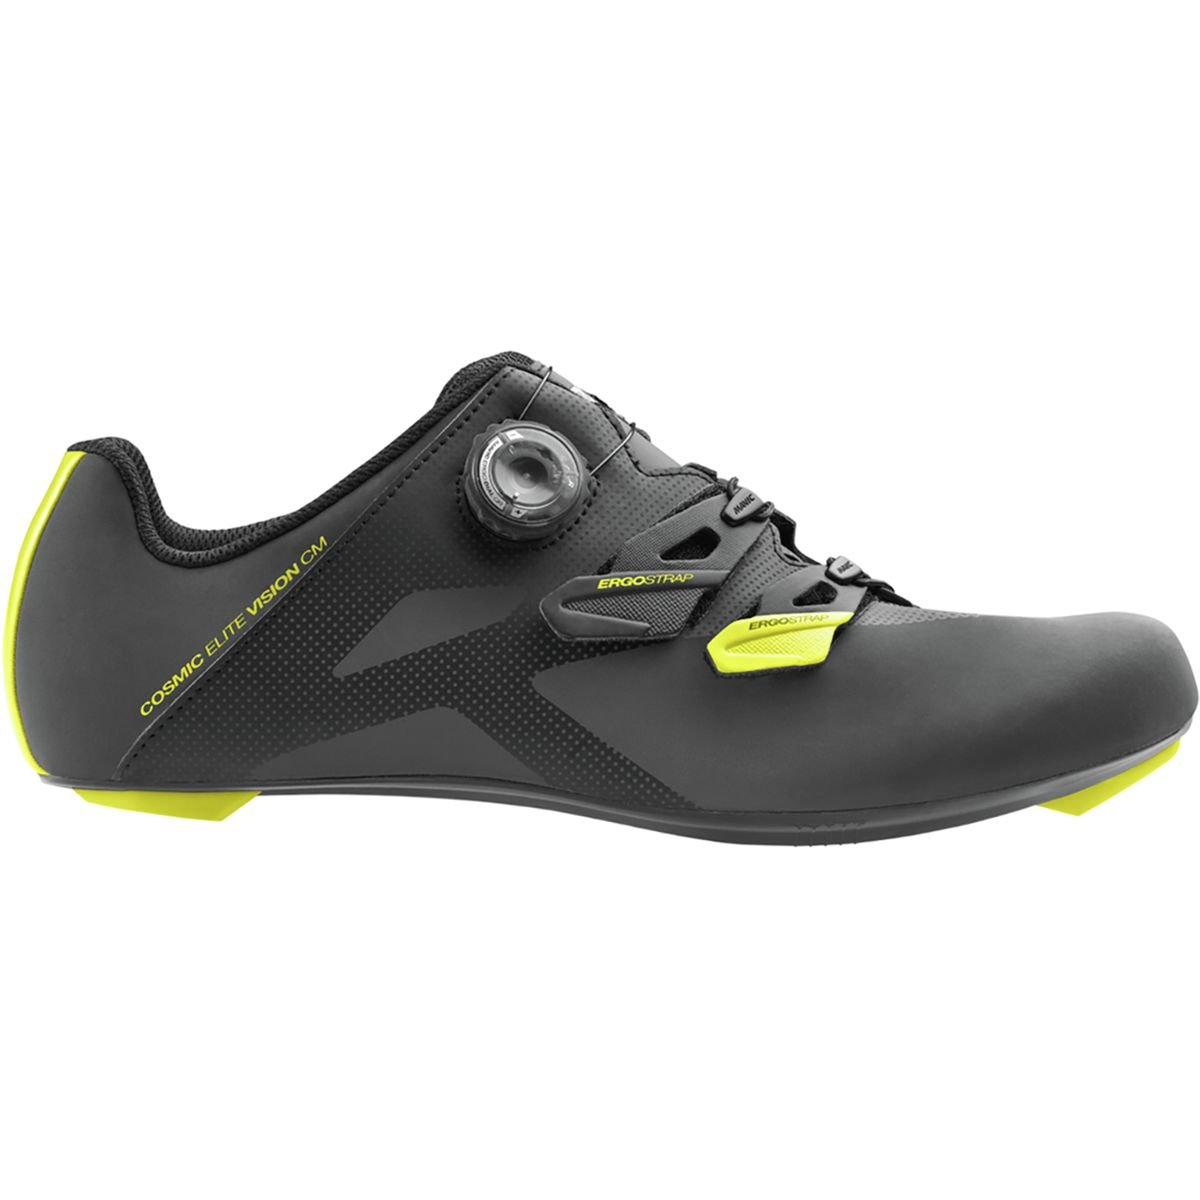 Mavic Cosmic EliteビジョンCM Shoe – Men 's Black/Yellow Mavic/ブラック、US 12.0 / UK 11.5   B072PP8BTS